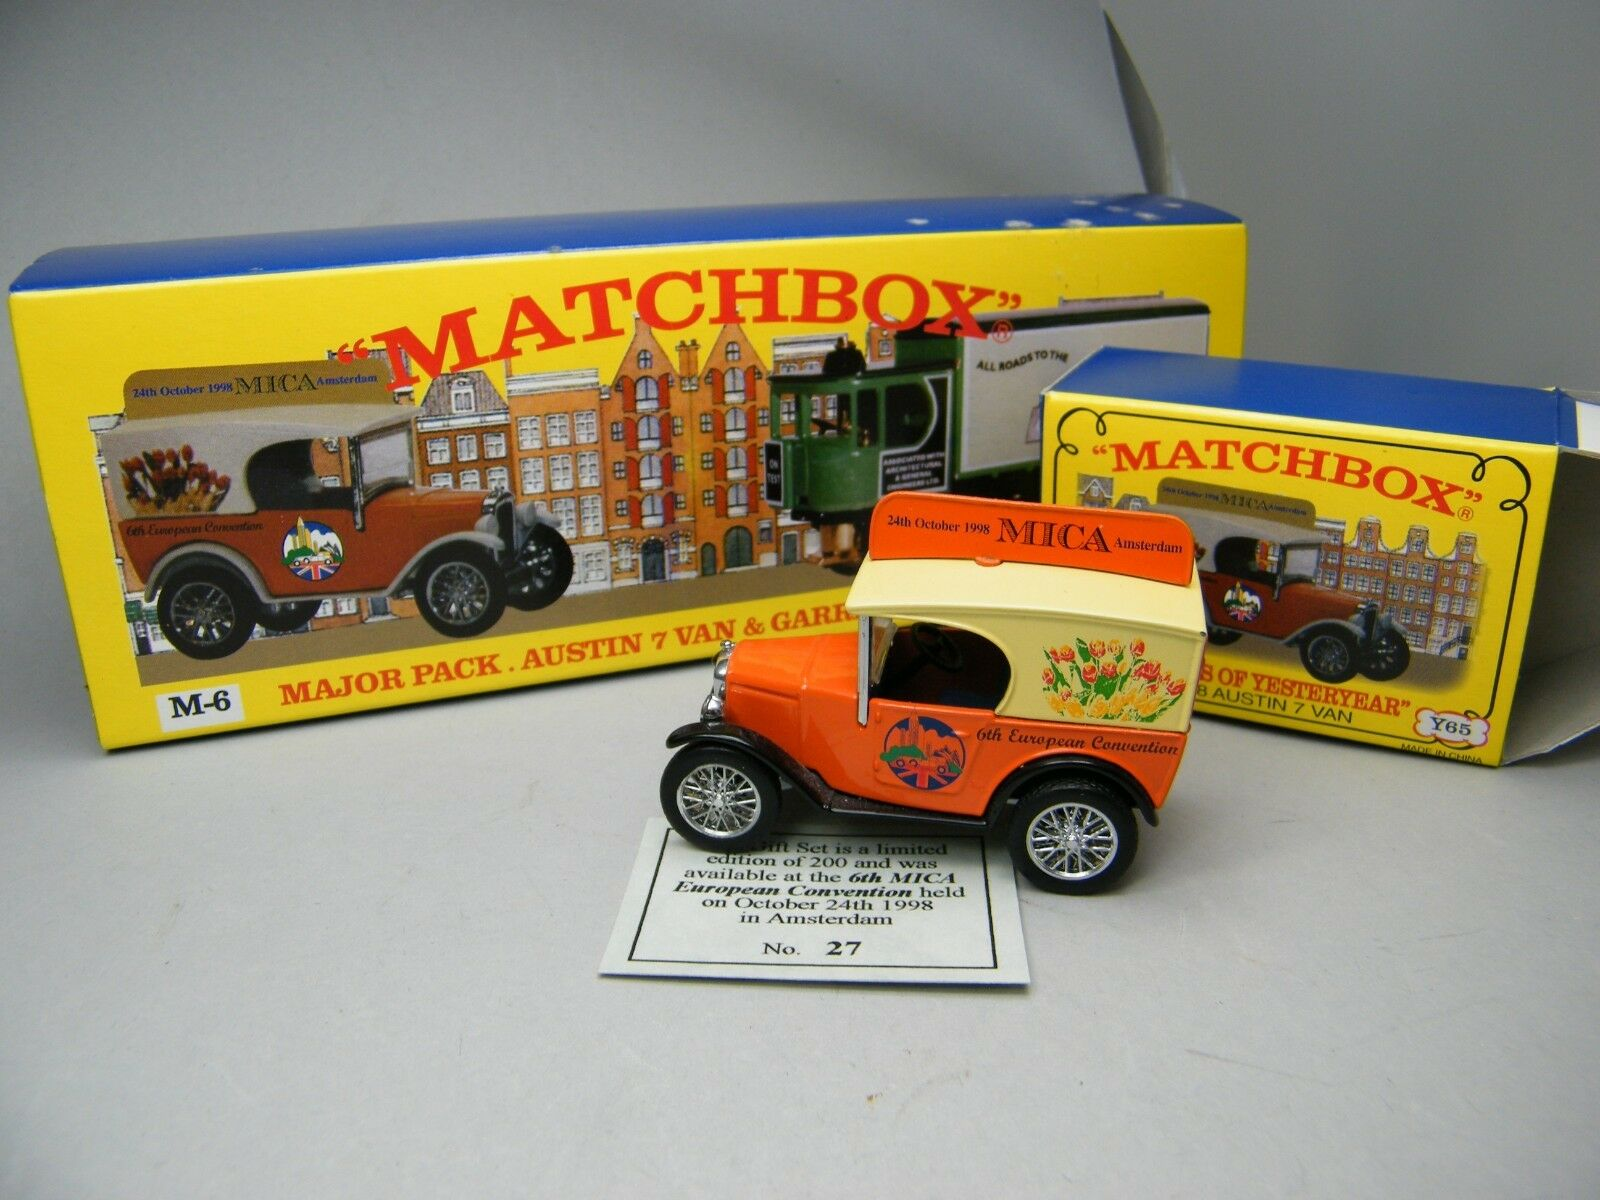 Matchbox MOY c2 y-65 Austin Seven from Mica m-6 Set 1 of 200 VERY RARE BOXED k17